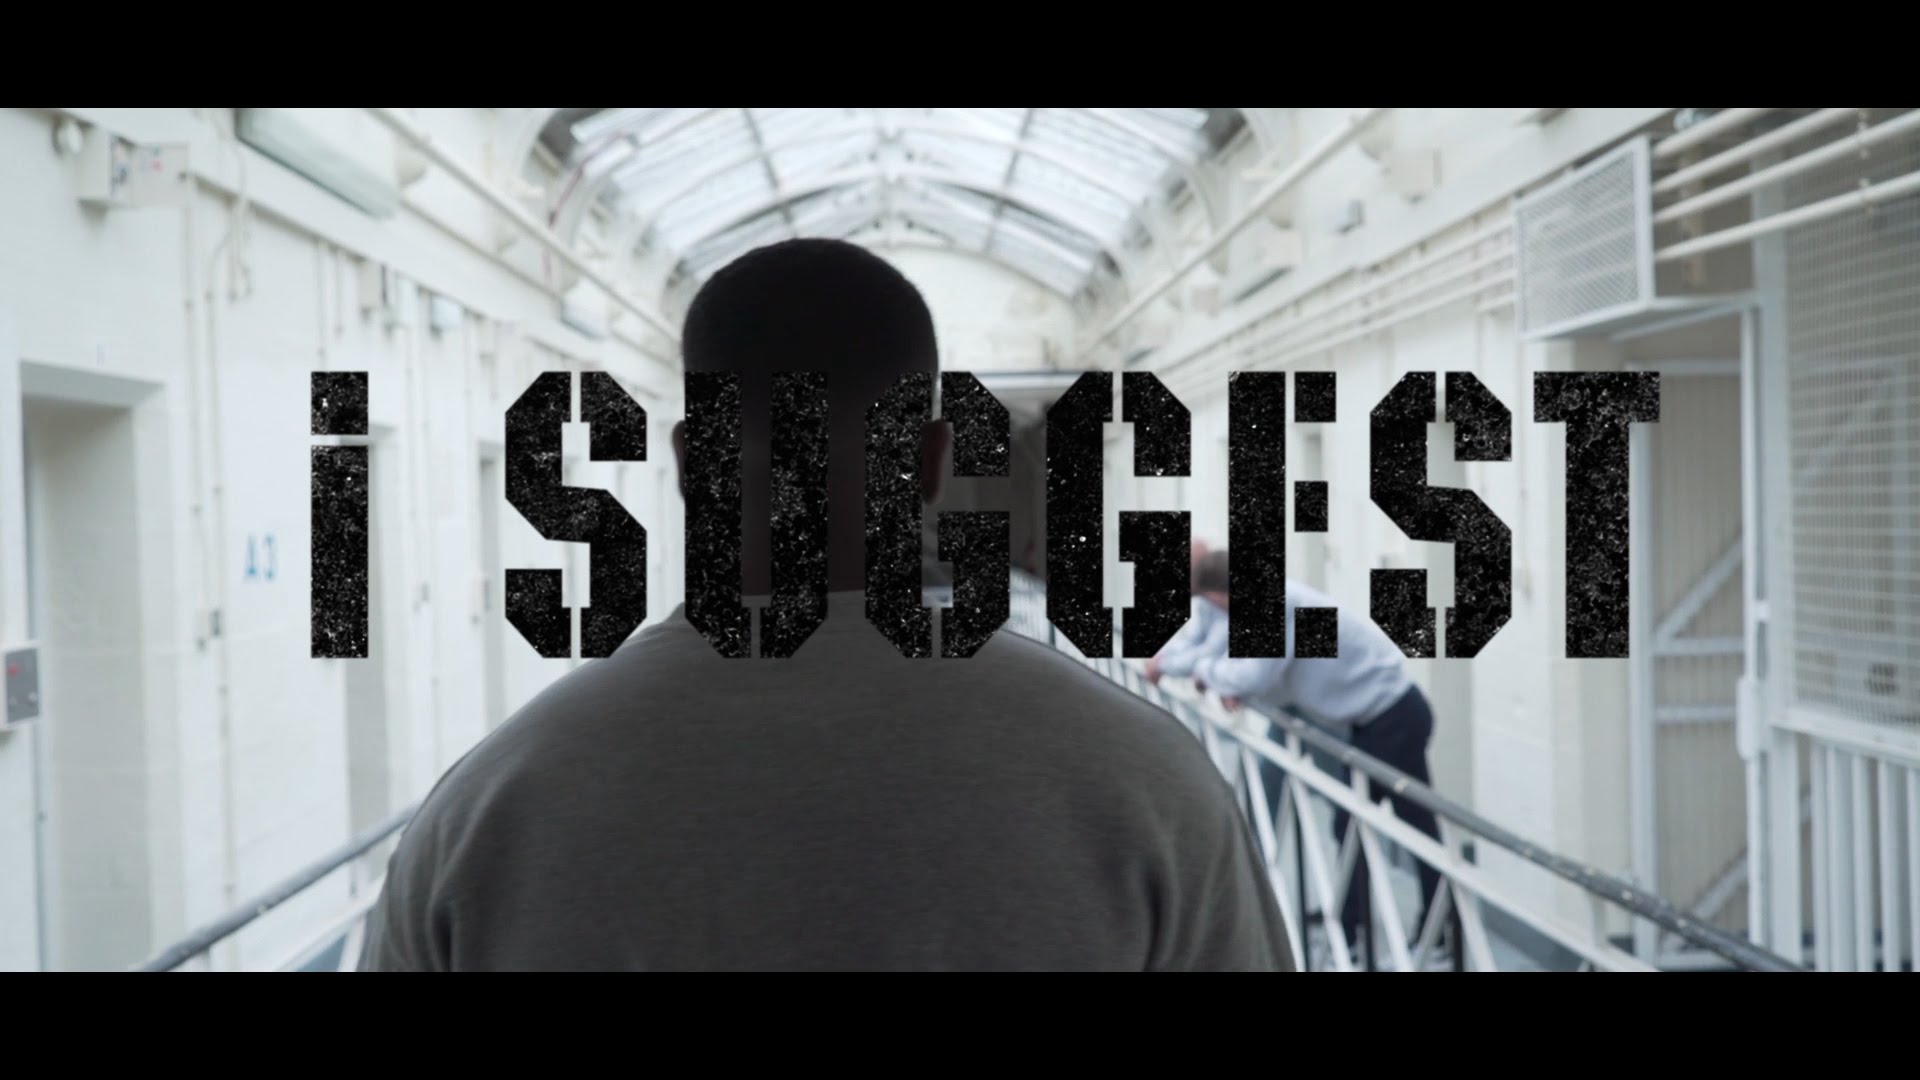 Bugzy Malone – Section 8(1) – Chapter 3 (I Suggest)